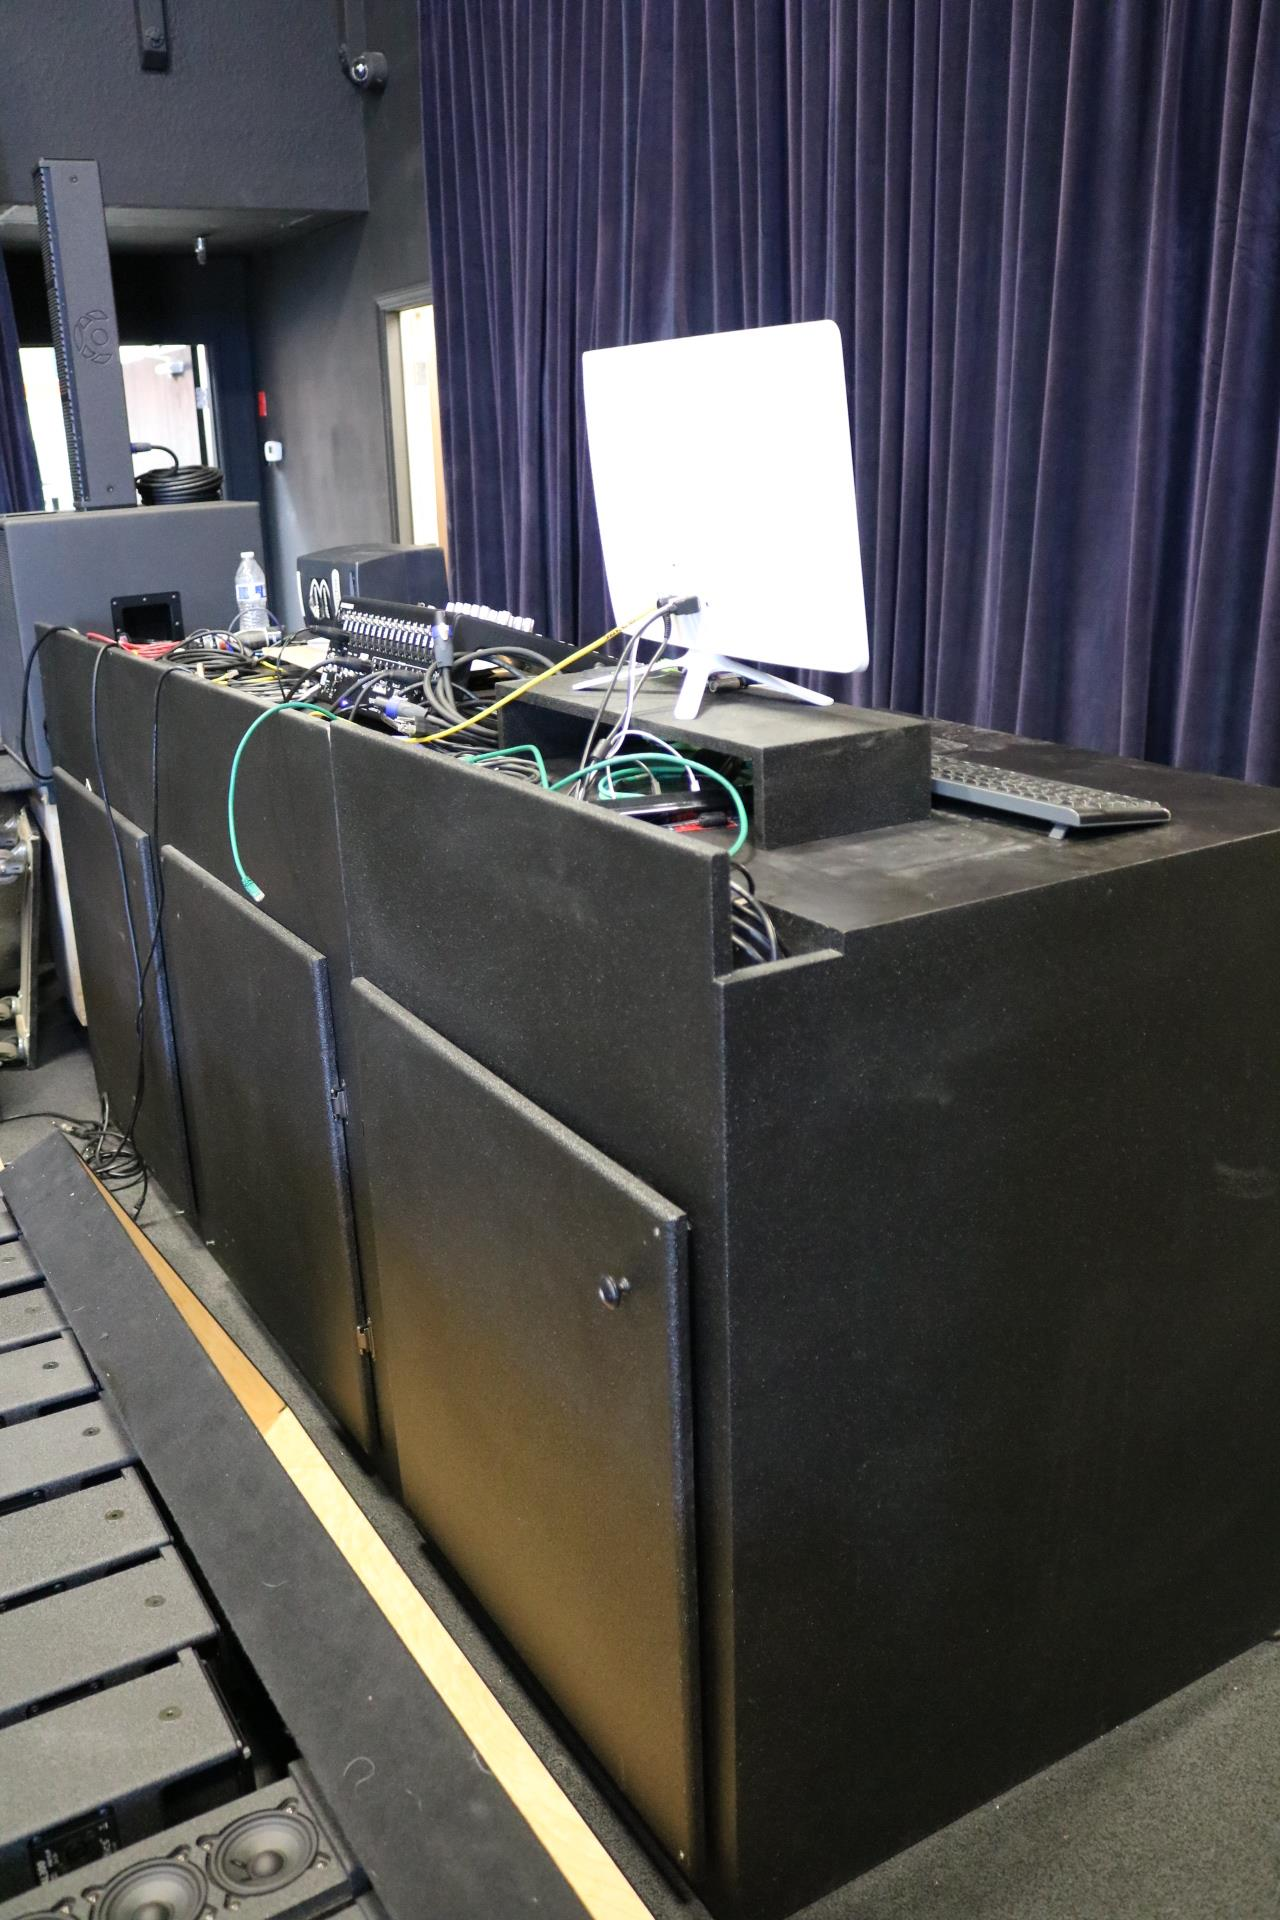 PRO AUDIO SPEAKER MANUFACTURER, 2018 LAGUNA ROUTERS, SCHELLING PANEL SAW, TOYOTA & HYSTER FORKLIFTS - Image 43 of 50